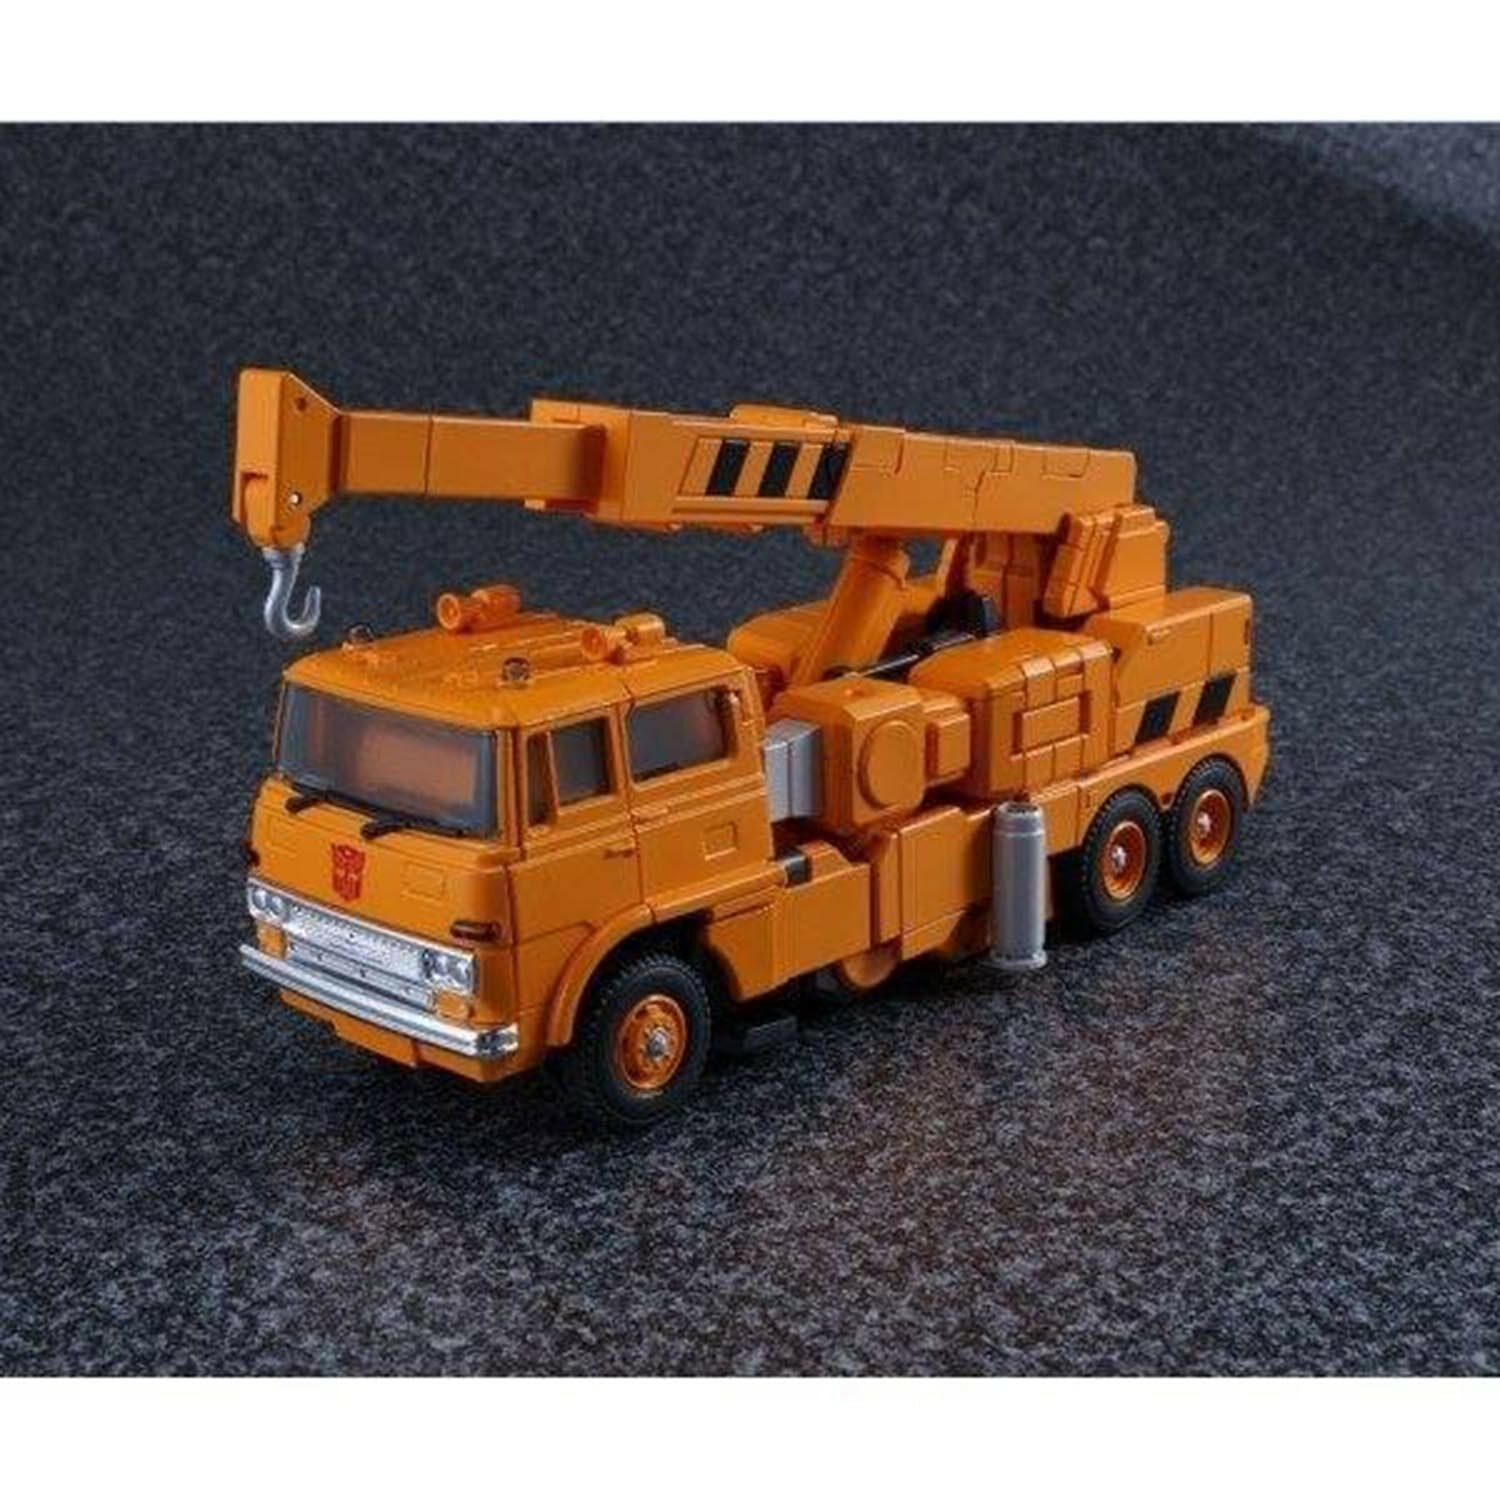 MP-35 MP35 MP35 MP35 GRAPPLE Transformers Masterpiece Action Figure Christmas Toy Gift 4e44f0